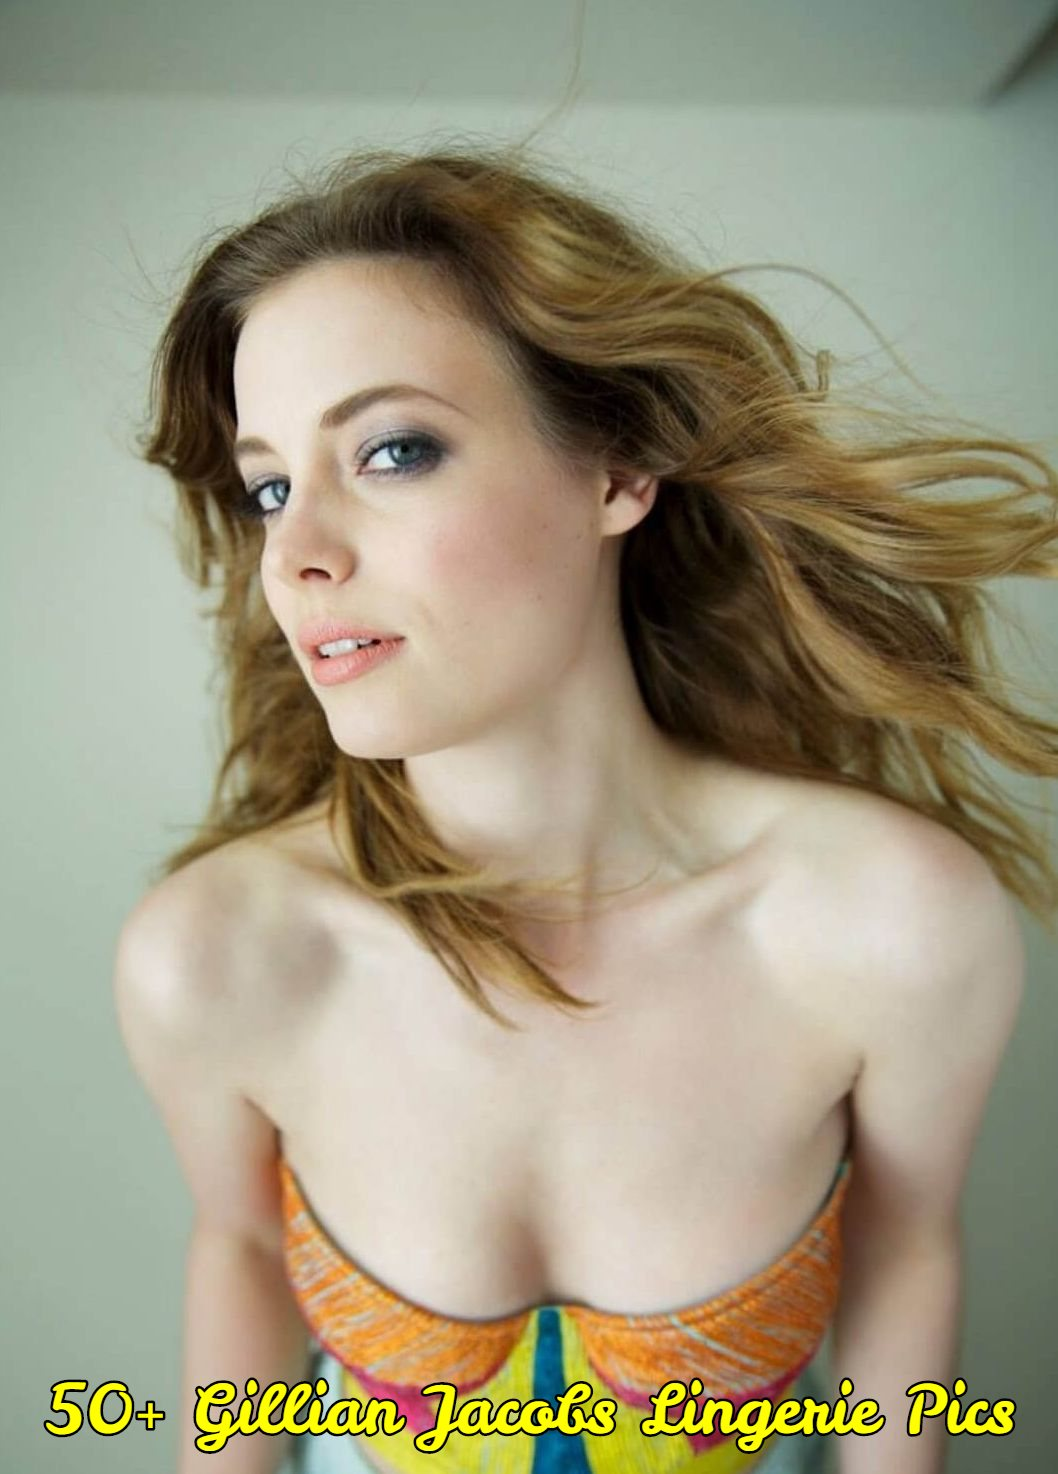 49 Hottest Gillian Jacobs Bikini Pictures Are Here To Fill Your